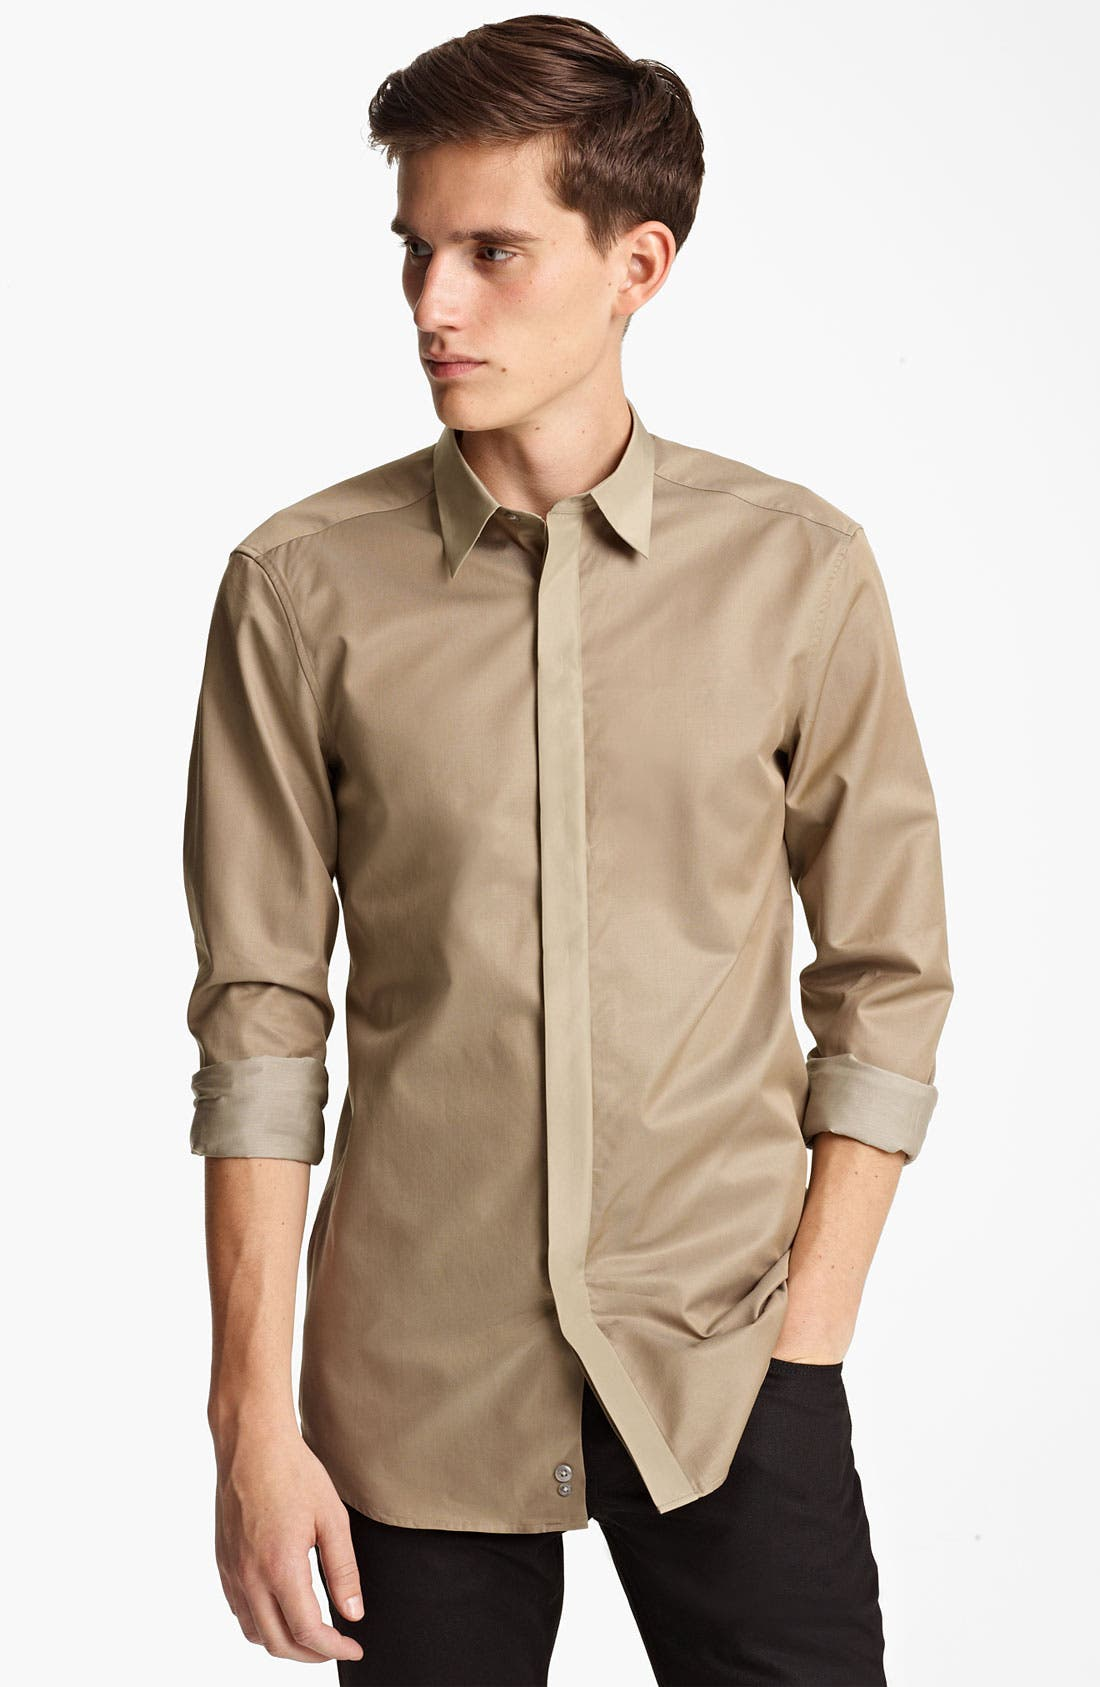 Alternate Image 1 Selected - Z Zegna Trim Fit Sport Shirt